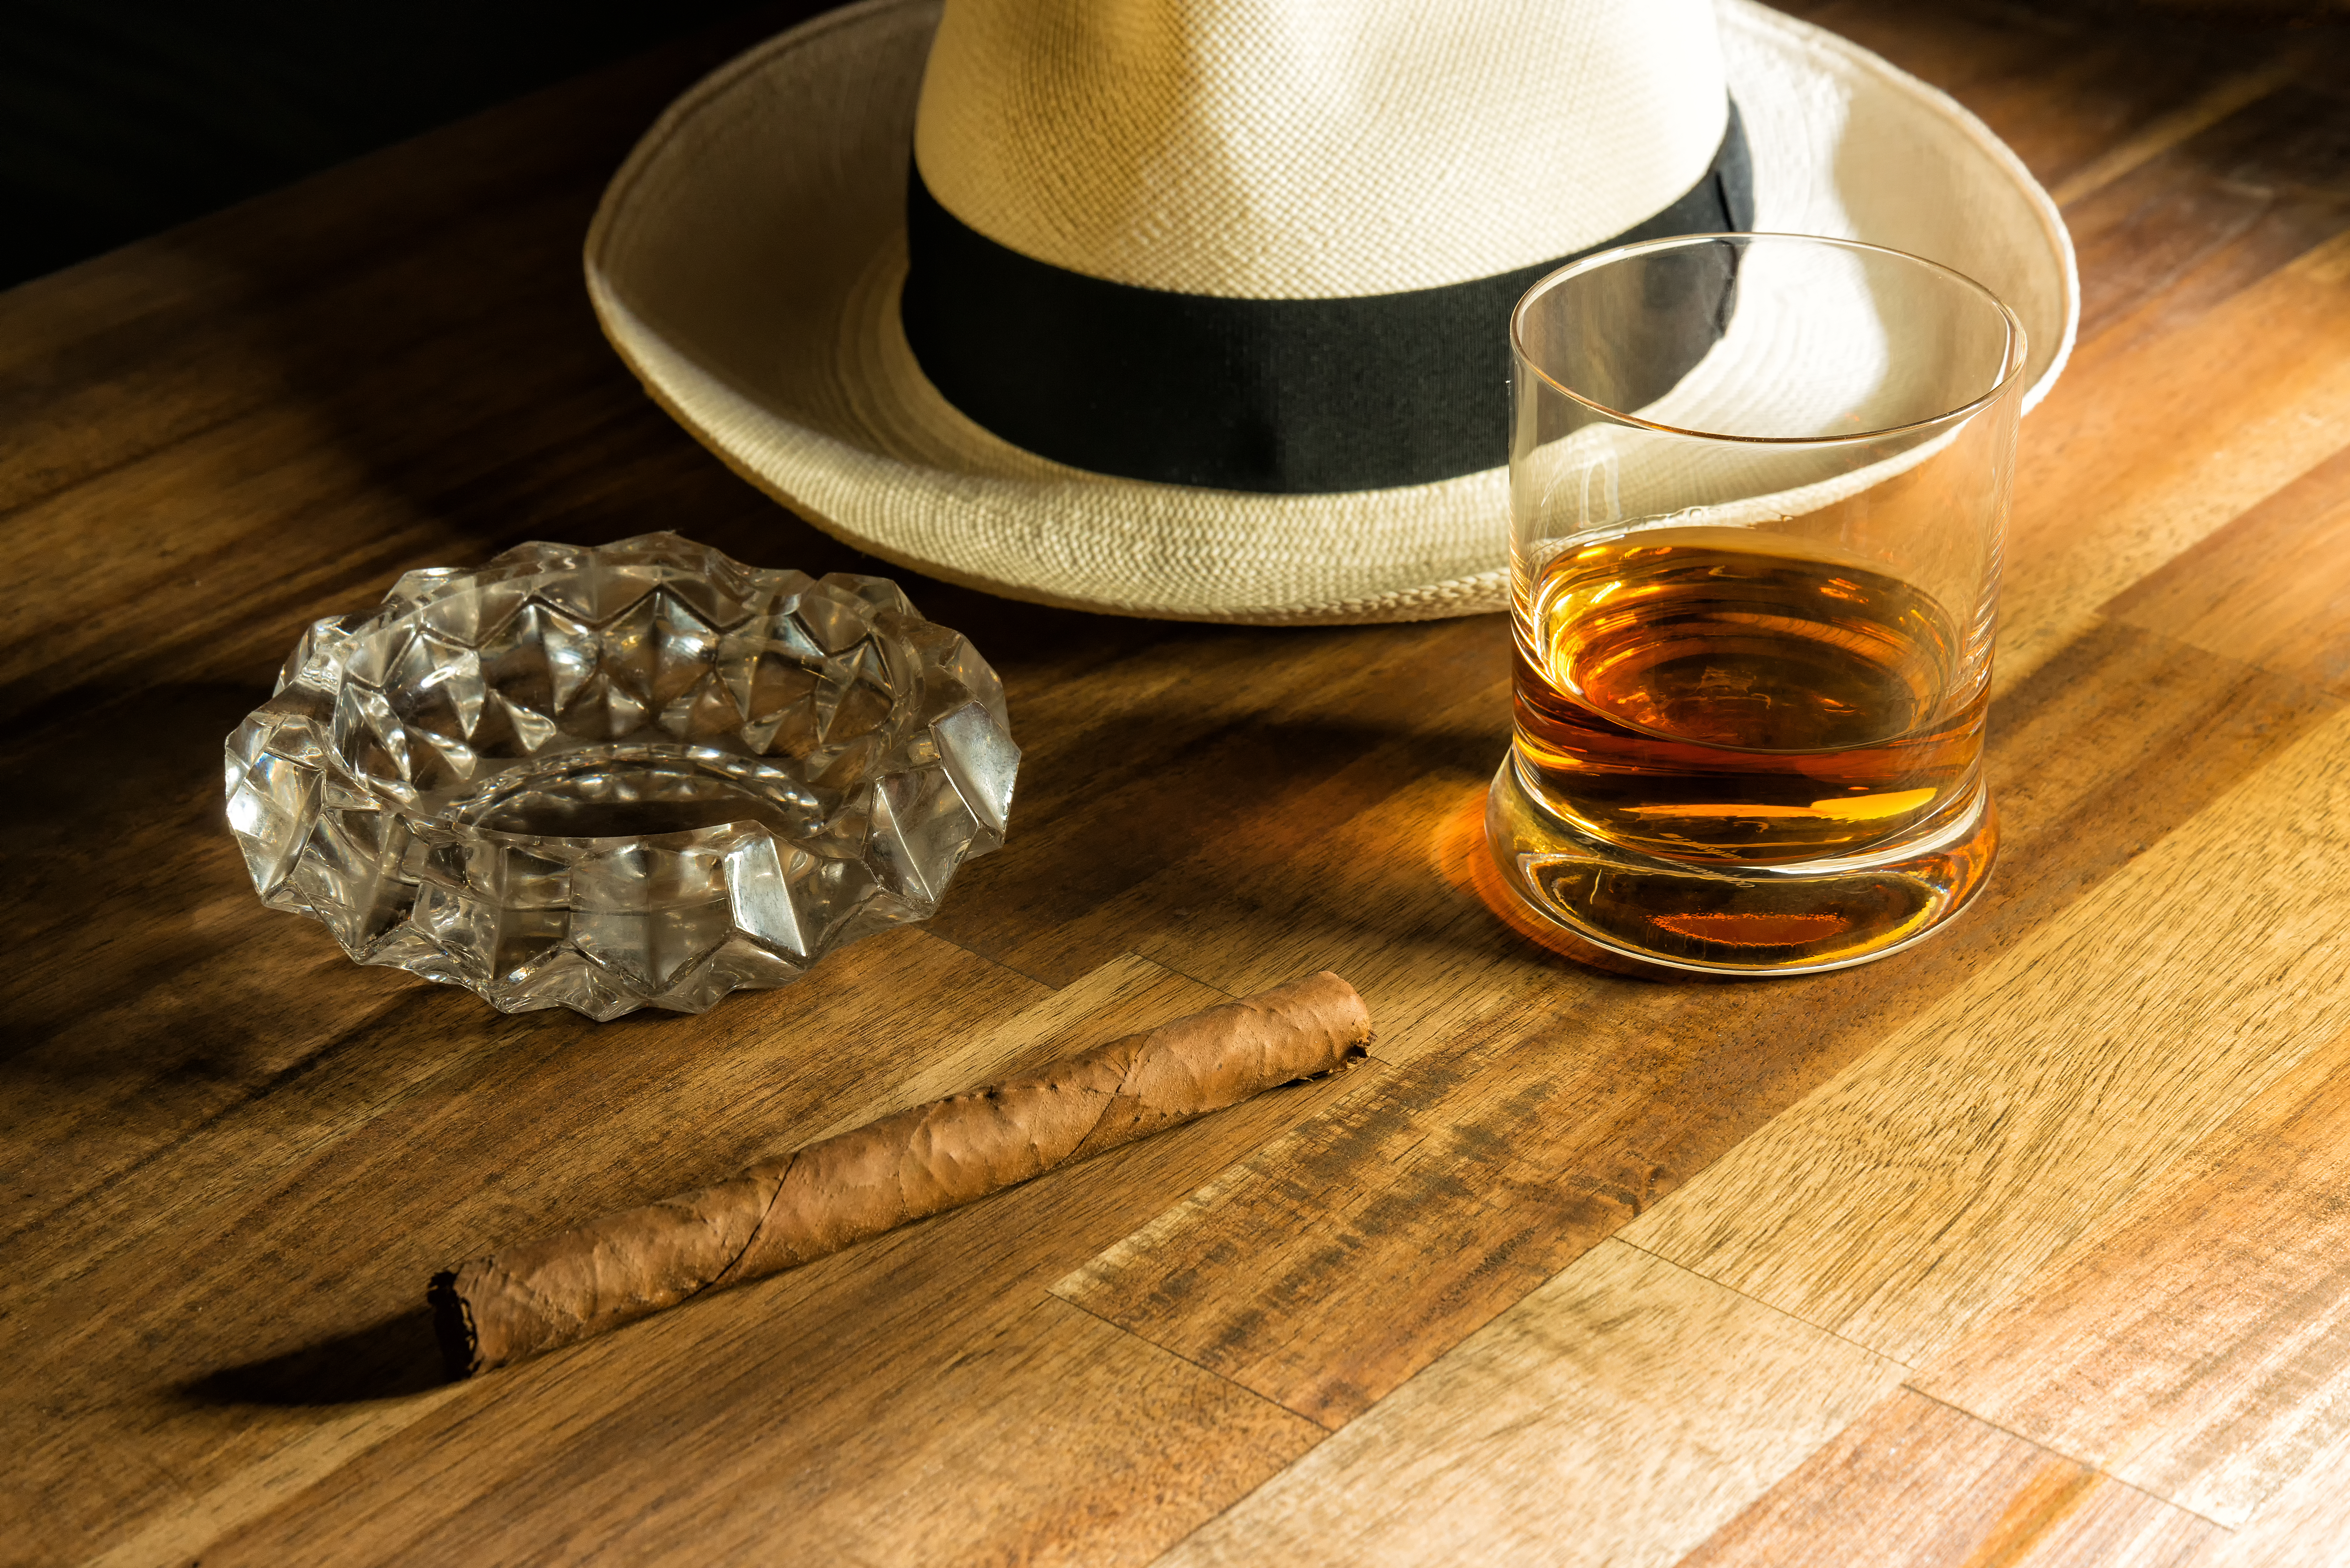 Rum, hat and cigar